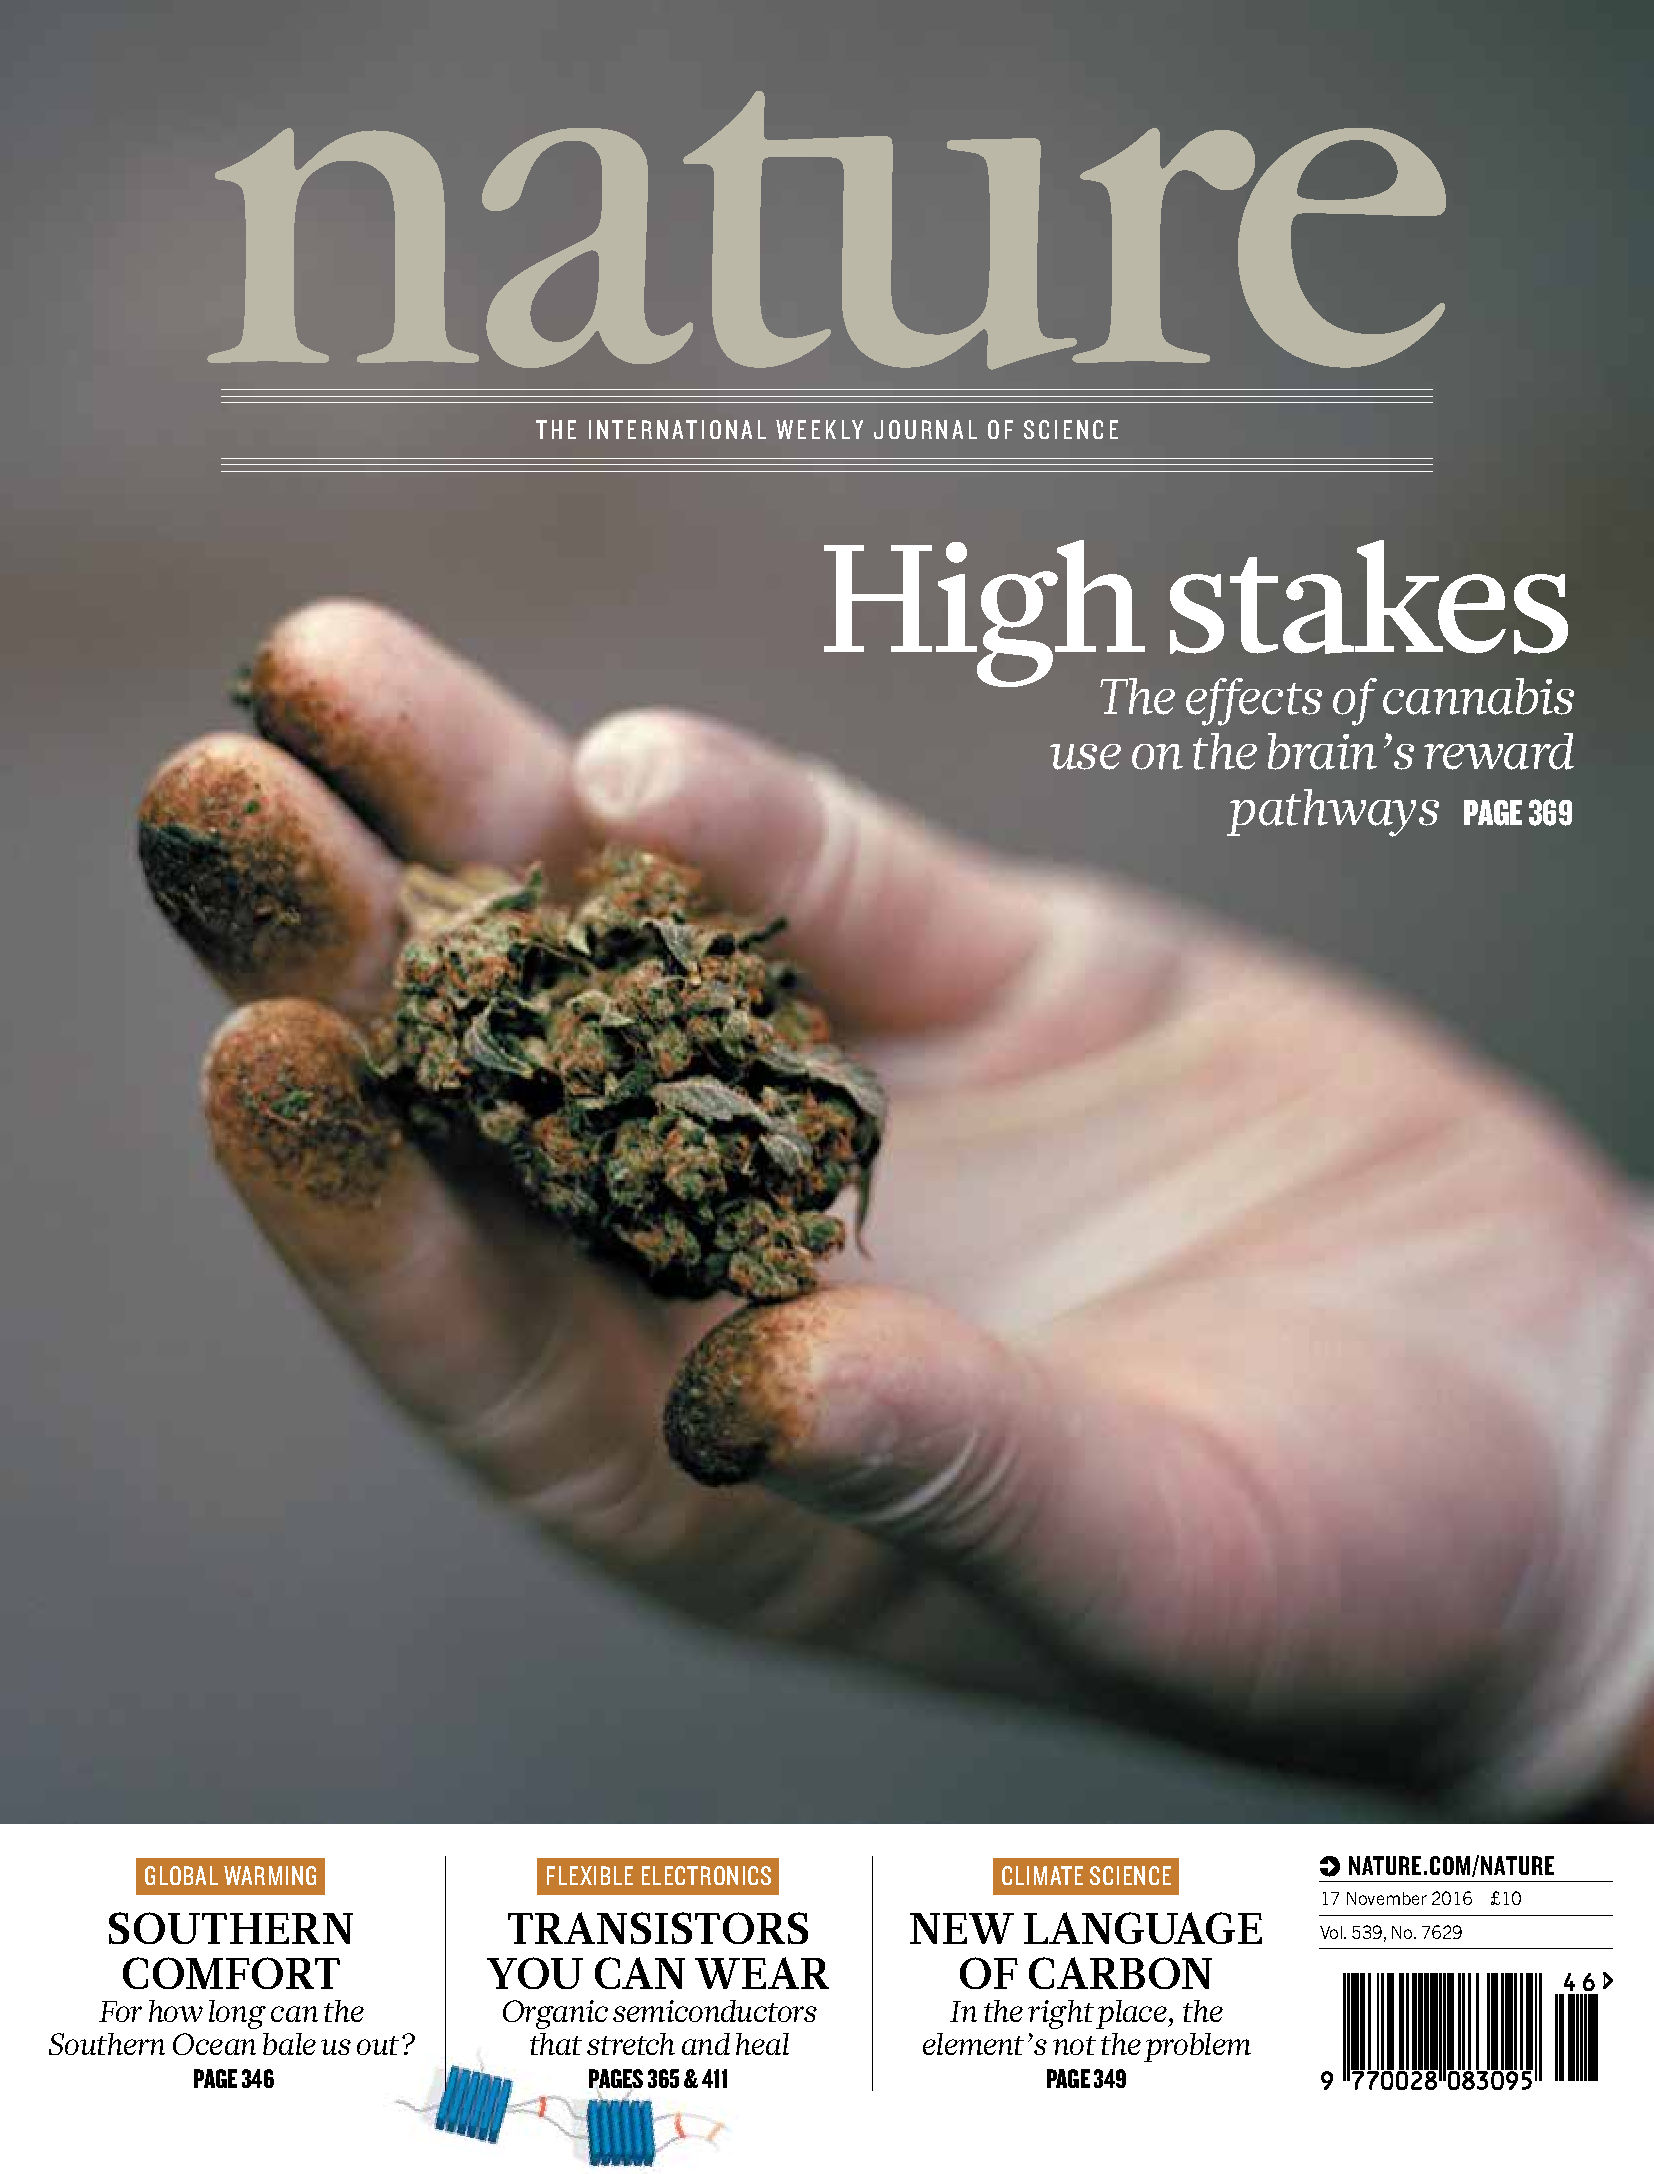 Cannabis review from Division of Psychiatry published in